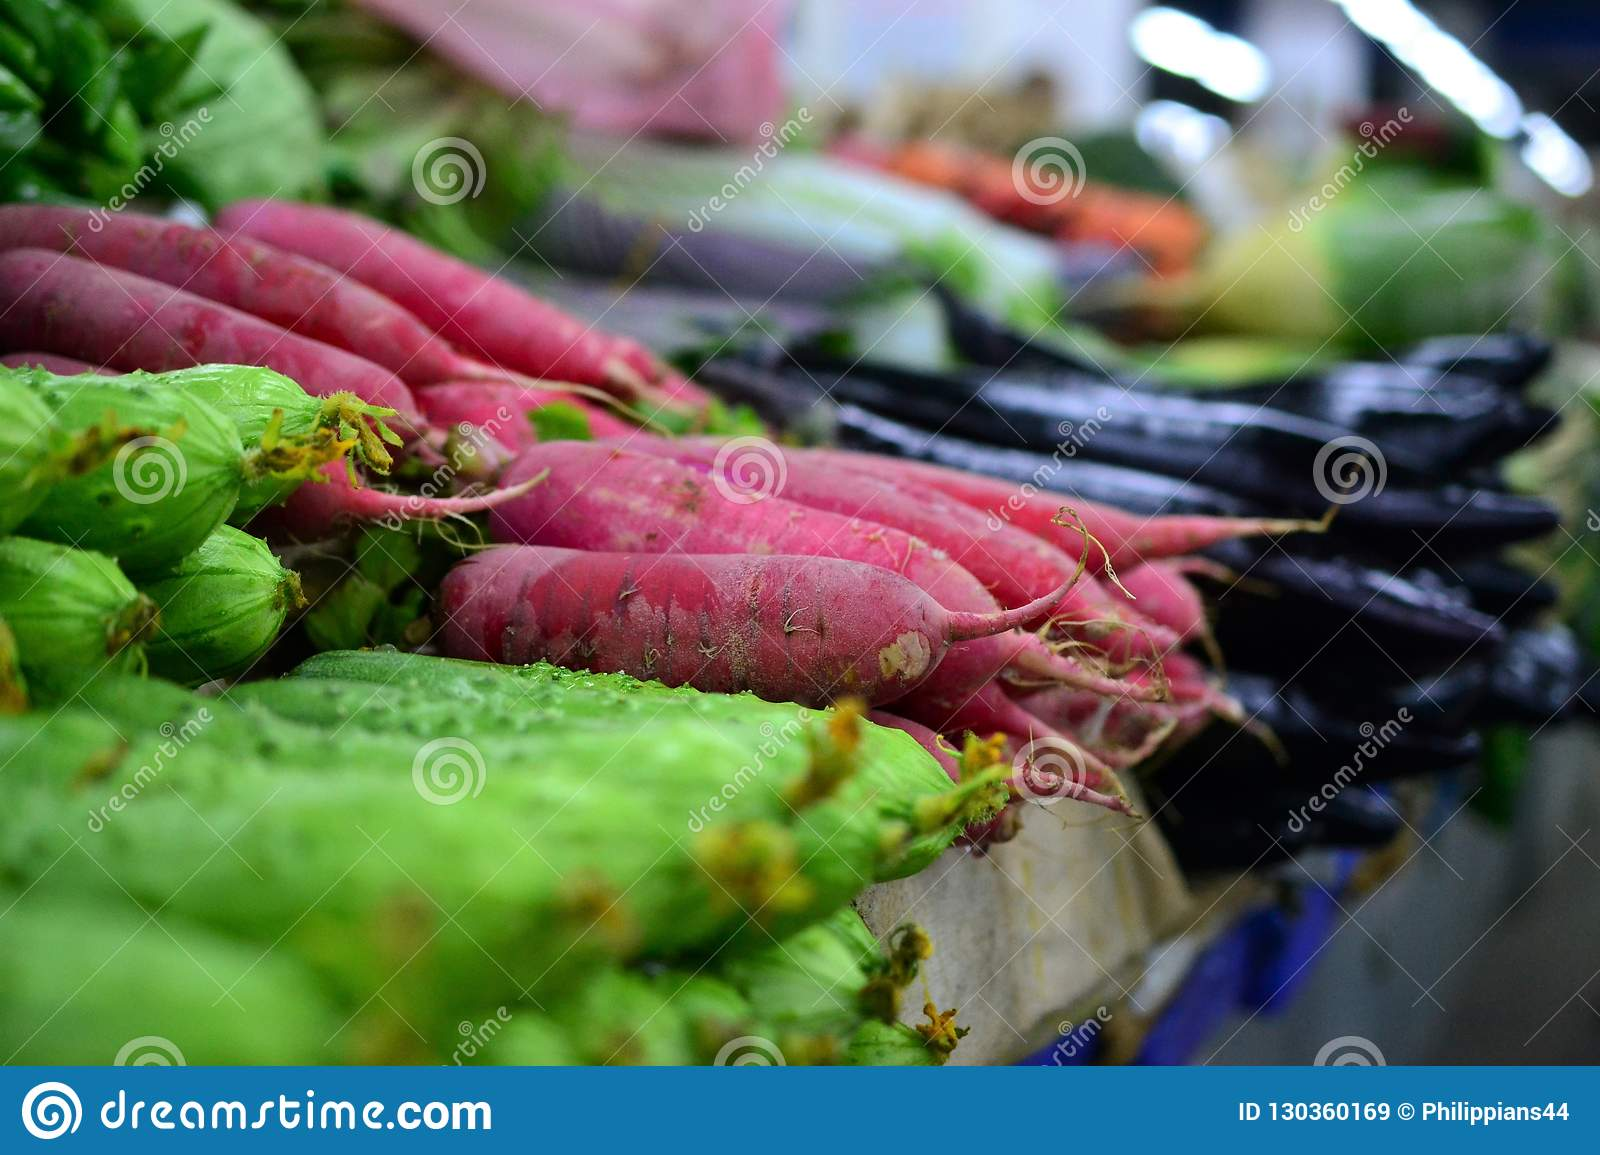 Radish and cucumber, Fresh vegetable on street market in China